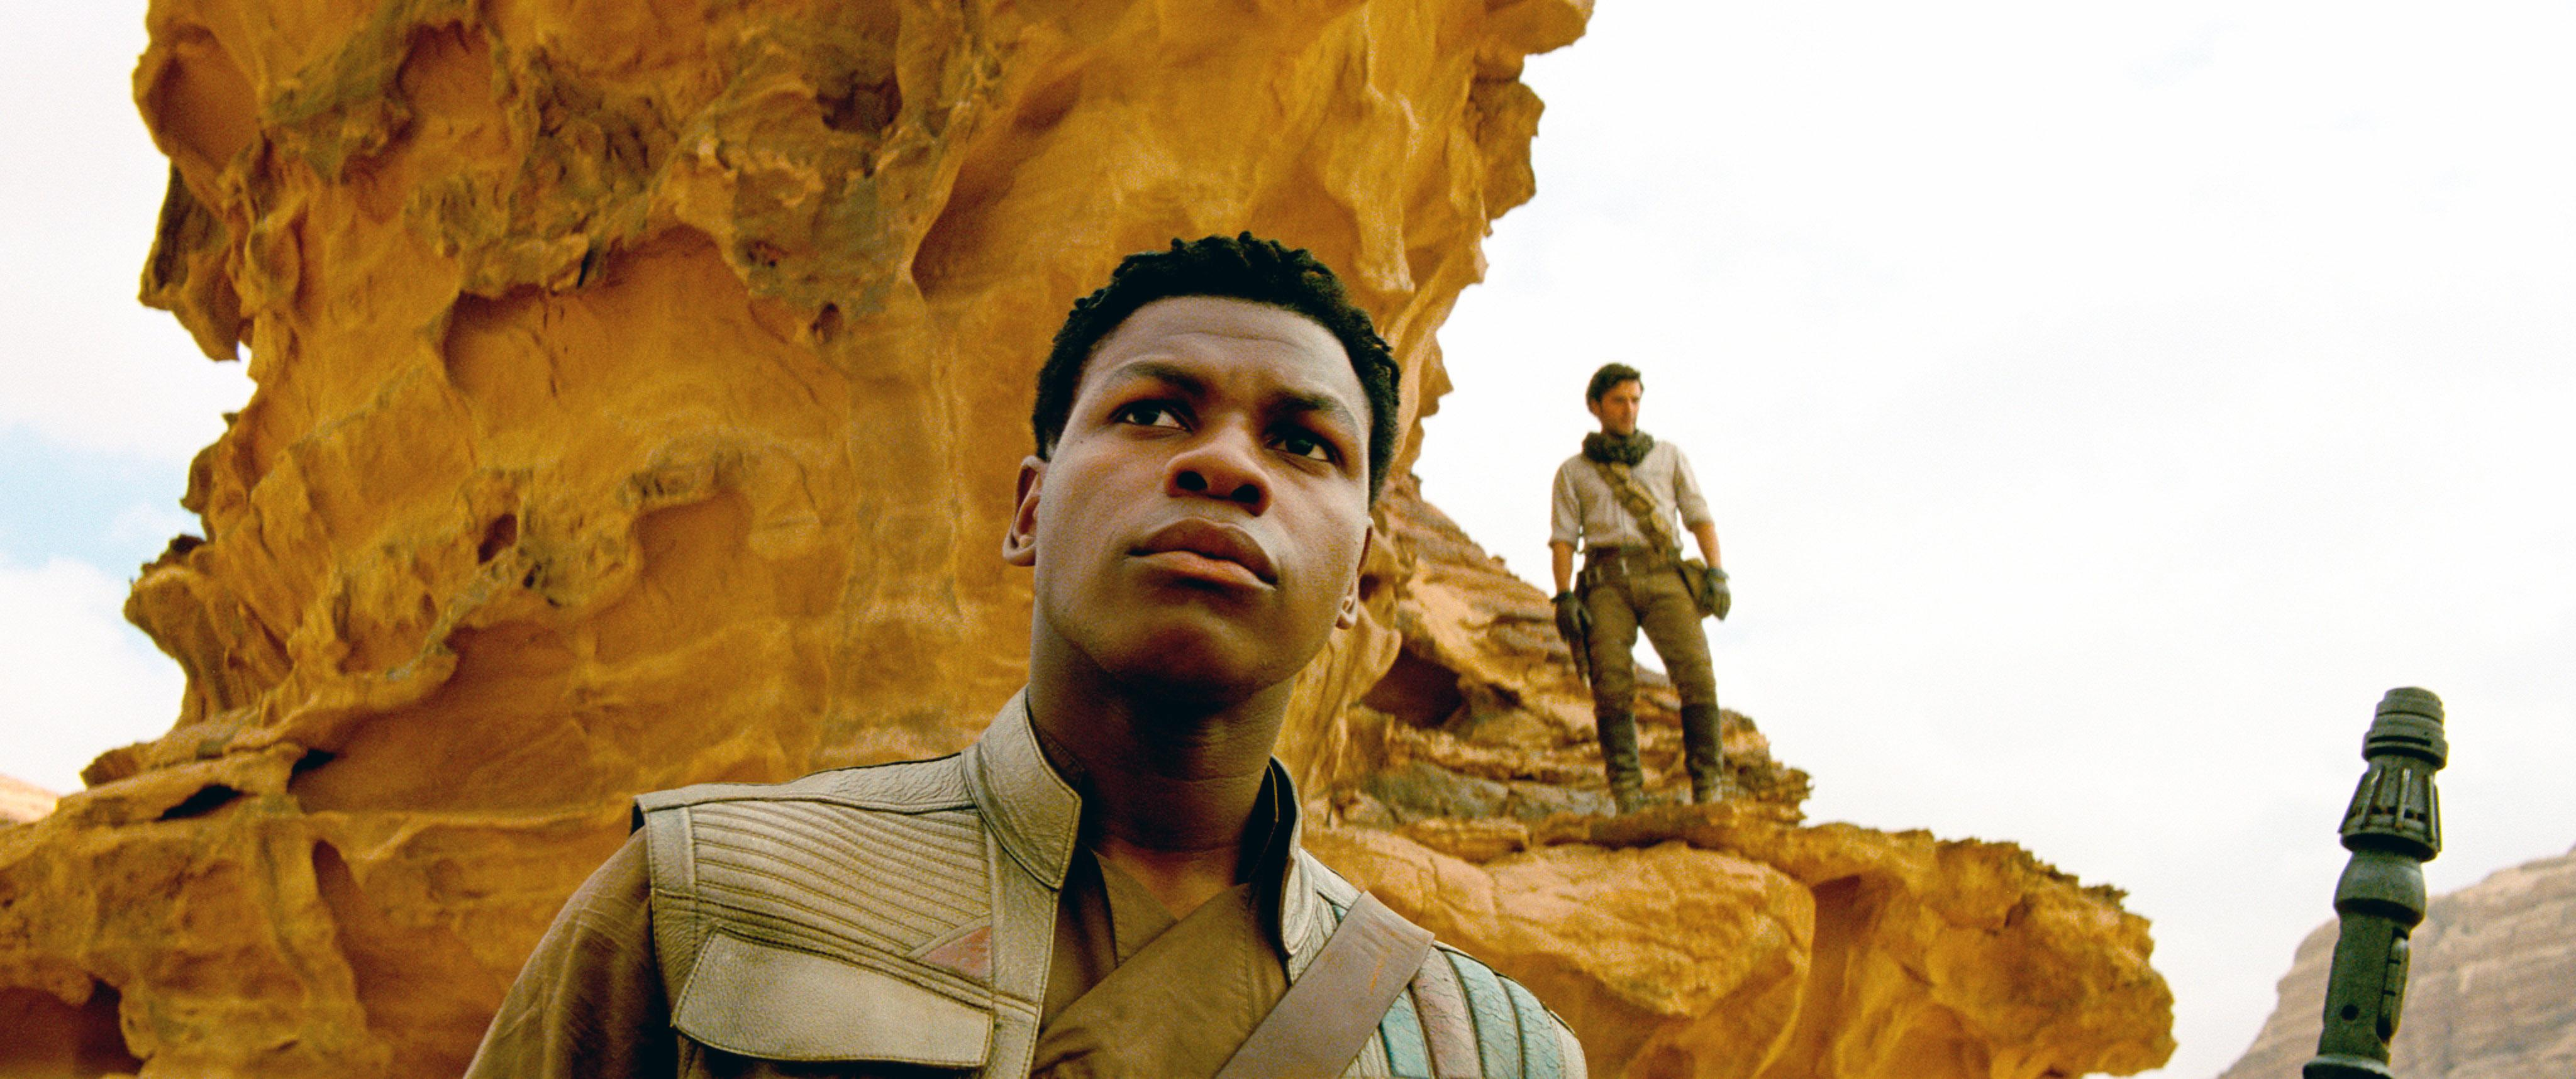 John Boyega reveals Finn's 'Star Wars' storyline that got away: 'That would have been dope, man!'